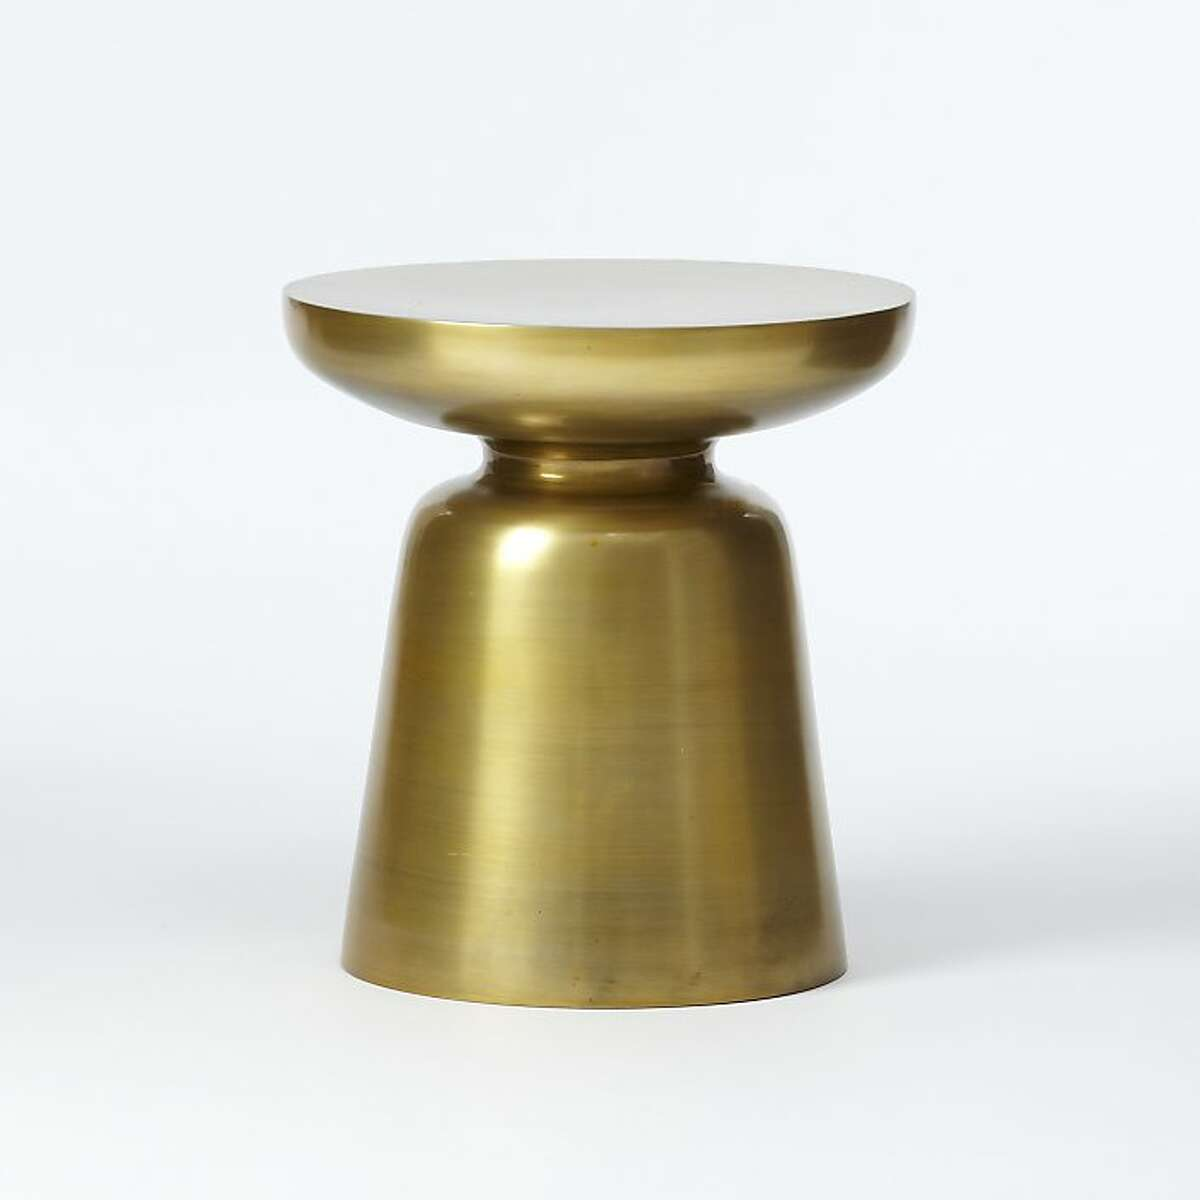 Less: $149 Martini Side Table in antique brass (www.westelm.com) Right off the bat, it s hard to go wrong with this nicely priced side table that West Elm has listed as one of its best-sellers. Sleek yet sculptural, it also has that compact-meets-impact quality that so many of us crave. This one measures 16 inches high and 15 inches in diameter. It s also available in silver, lemon and persimmon.